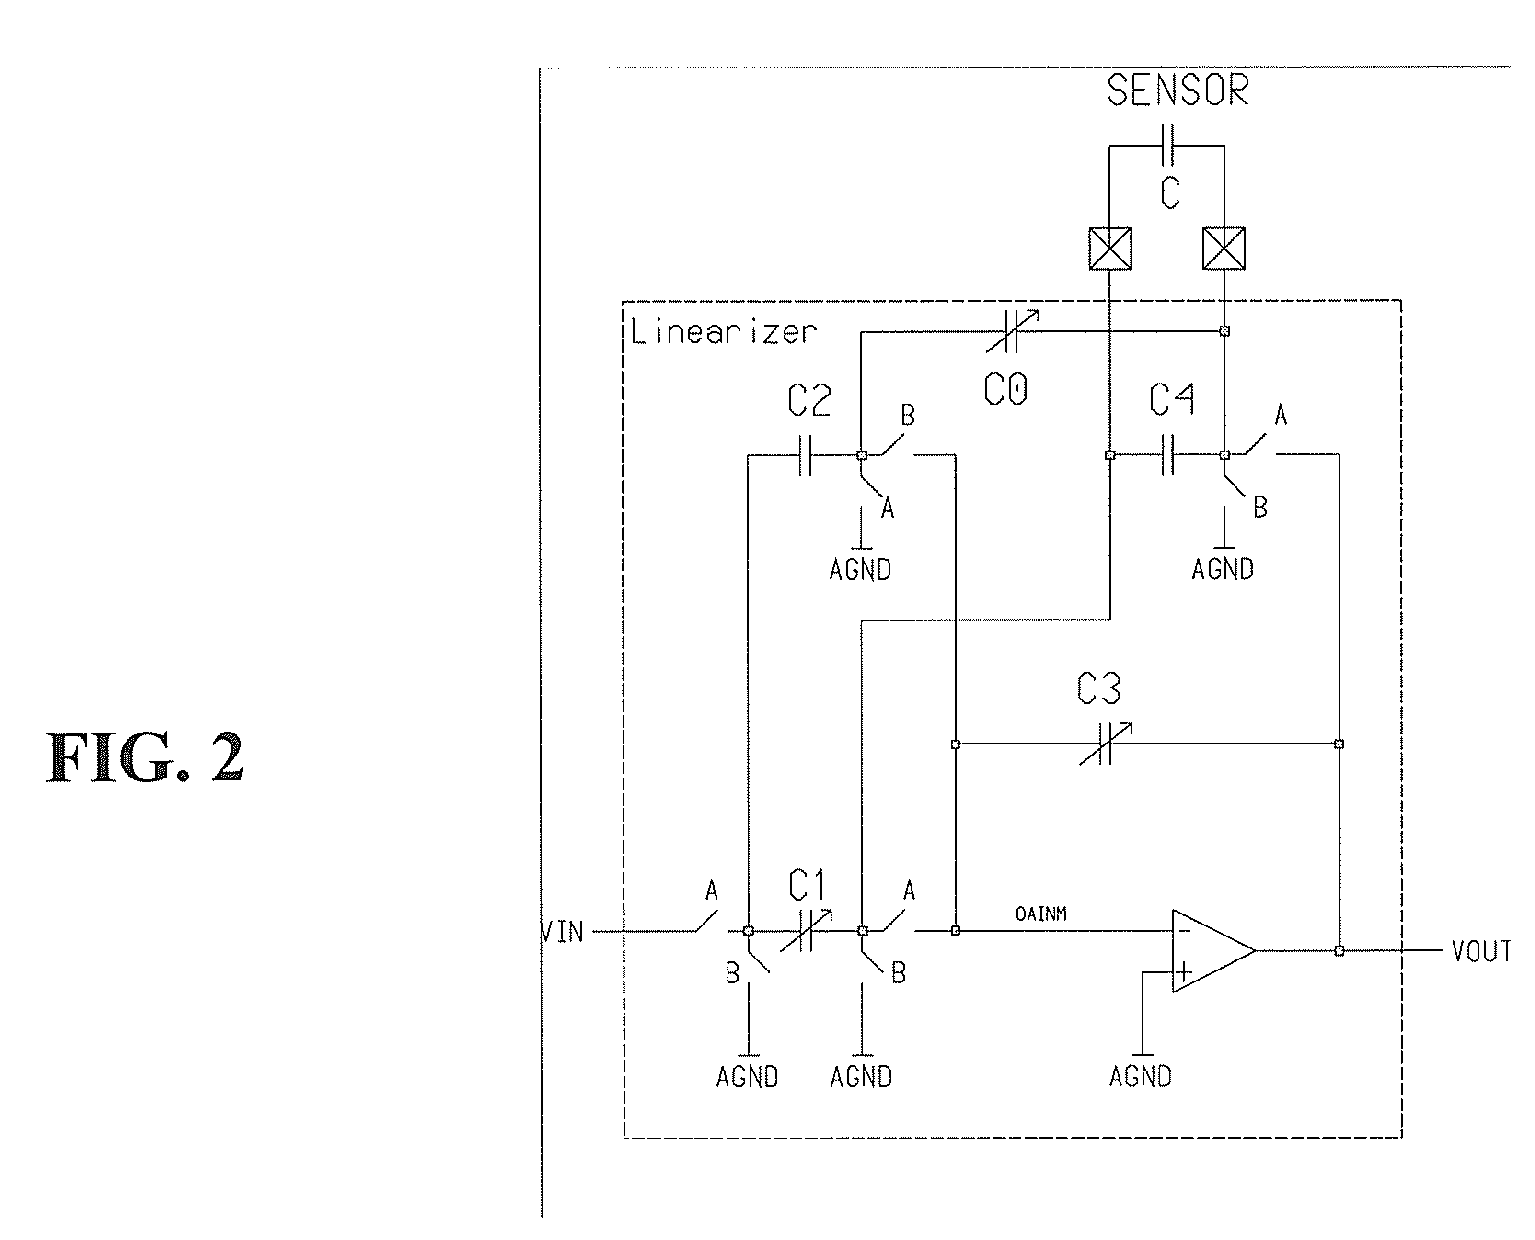 hight resolution of ep1722211a2 linearizer circuit for a capacitive pressure sensor circuit diagram of pressure transmitter basiccircuit circuit